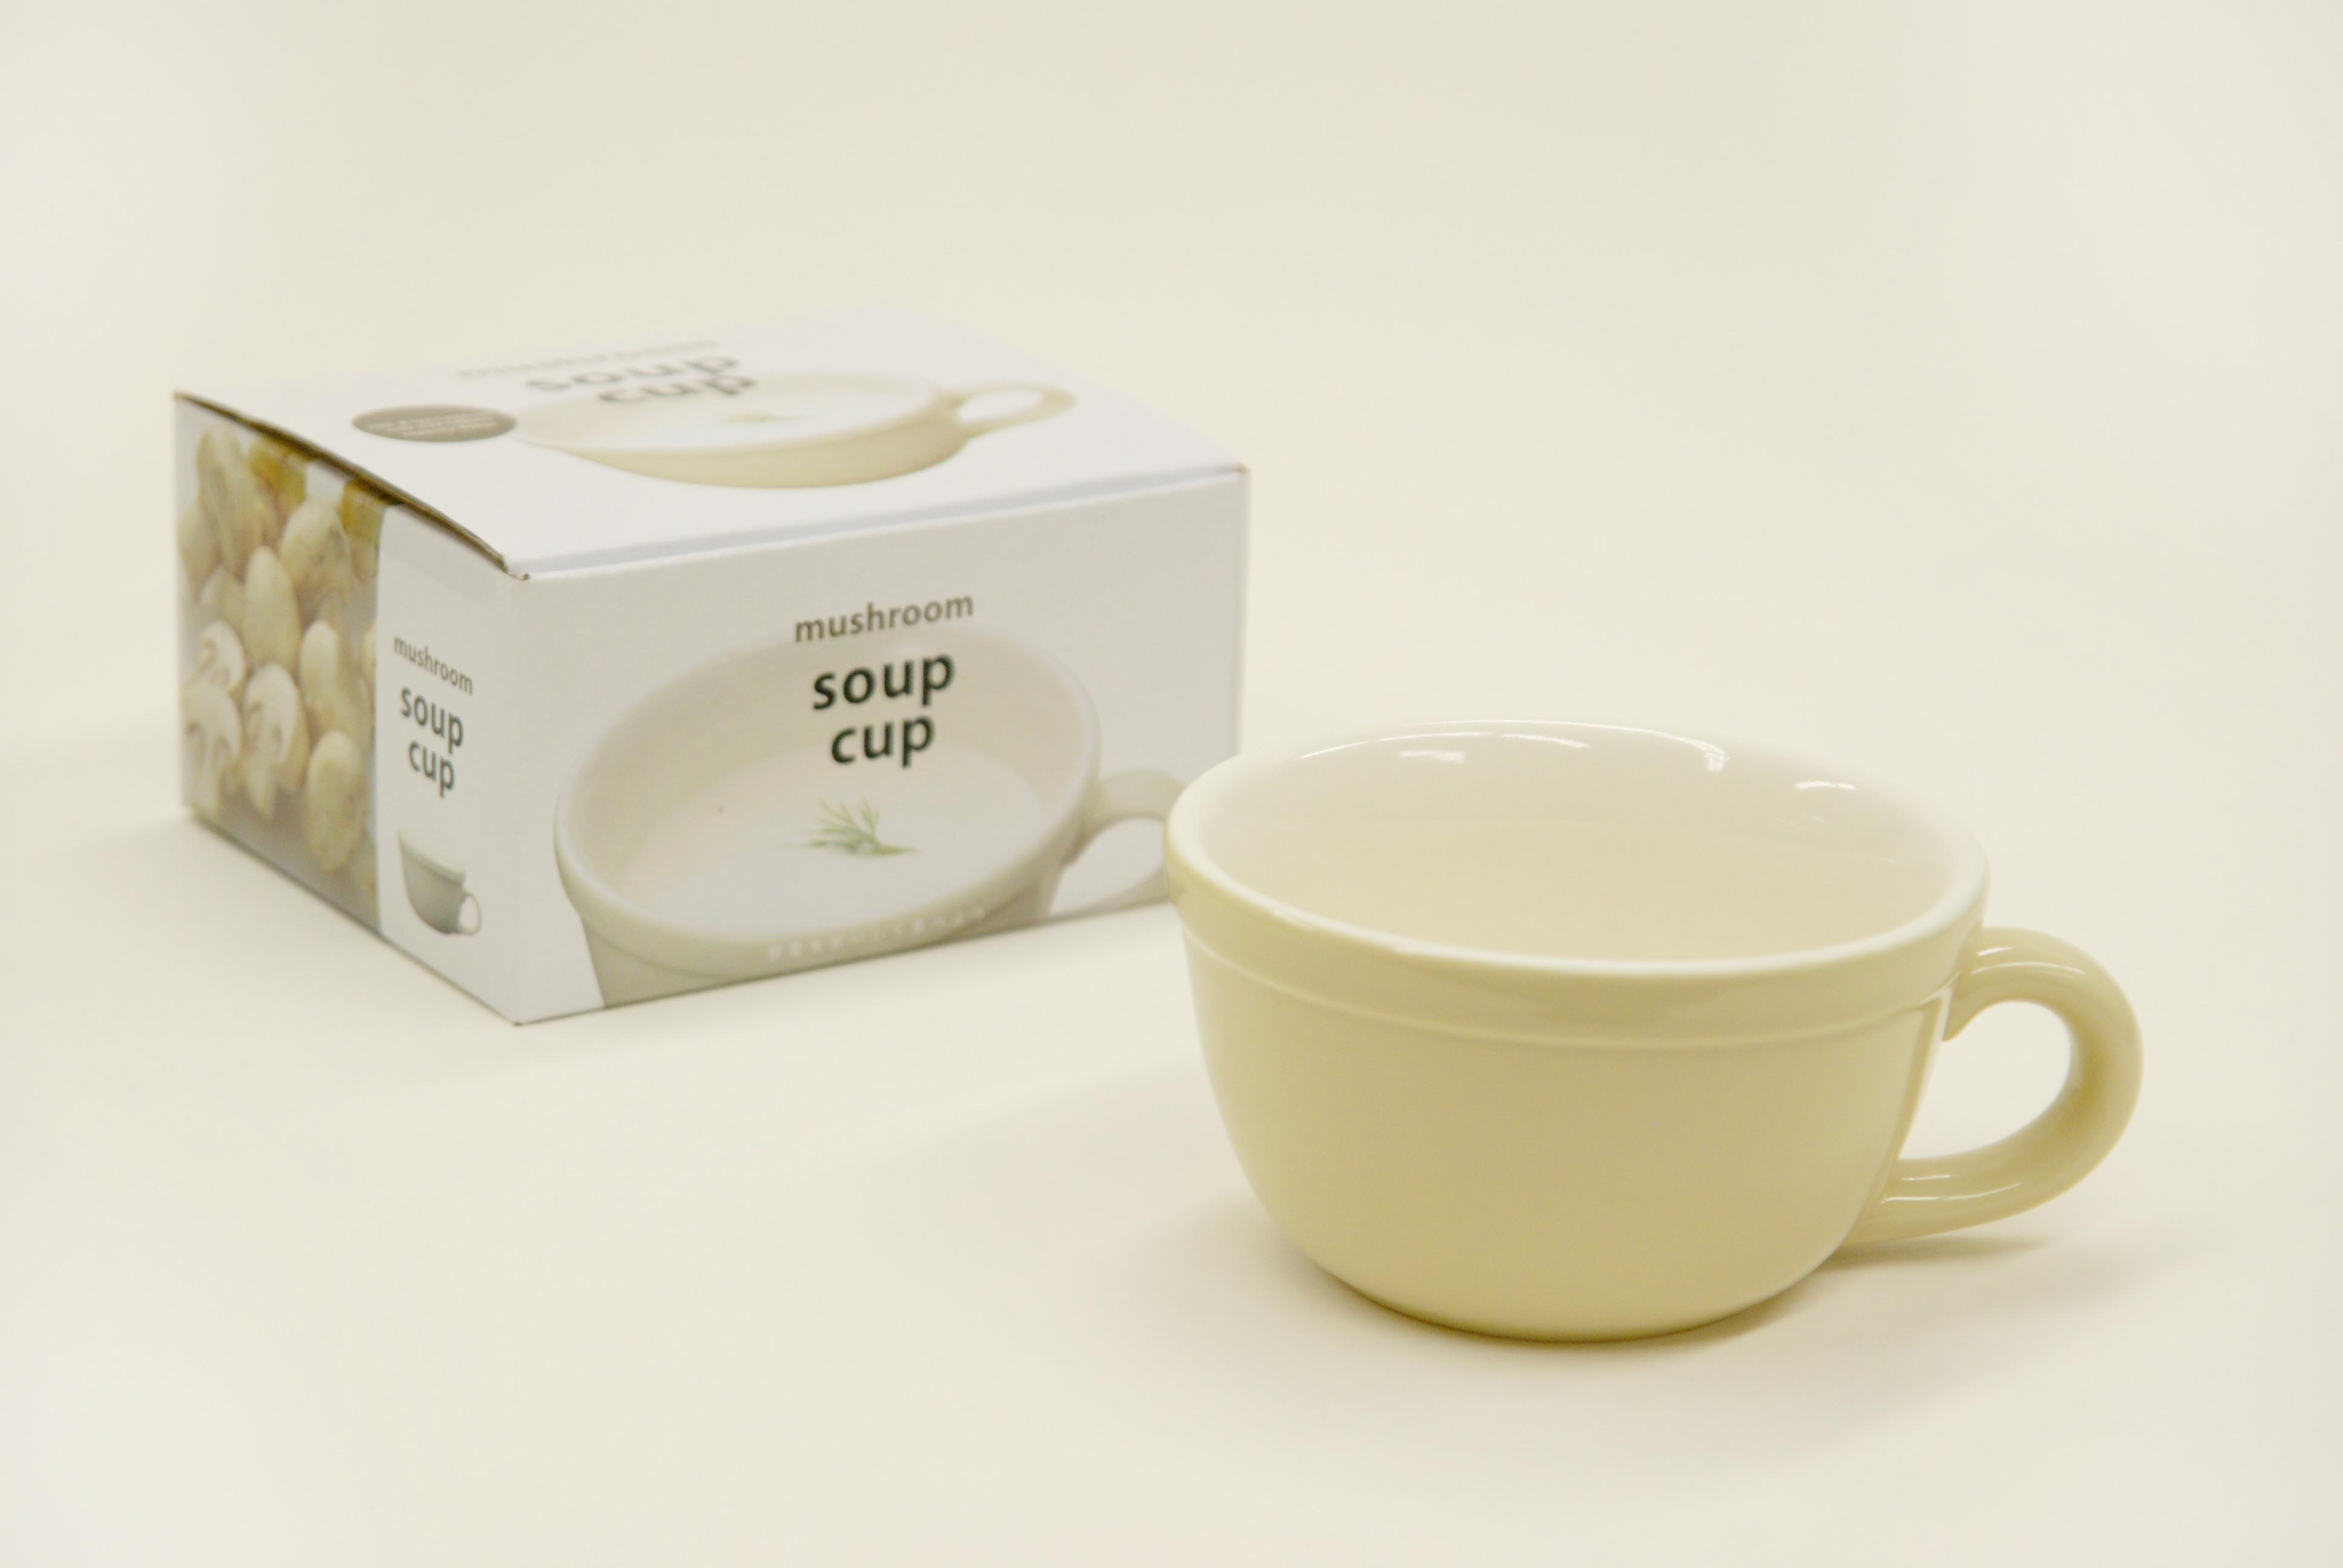 Rustic Set of 5 Handmade Soup Cups by Kinto Japan